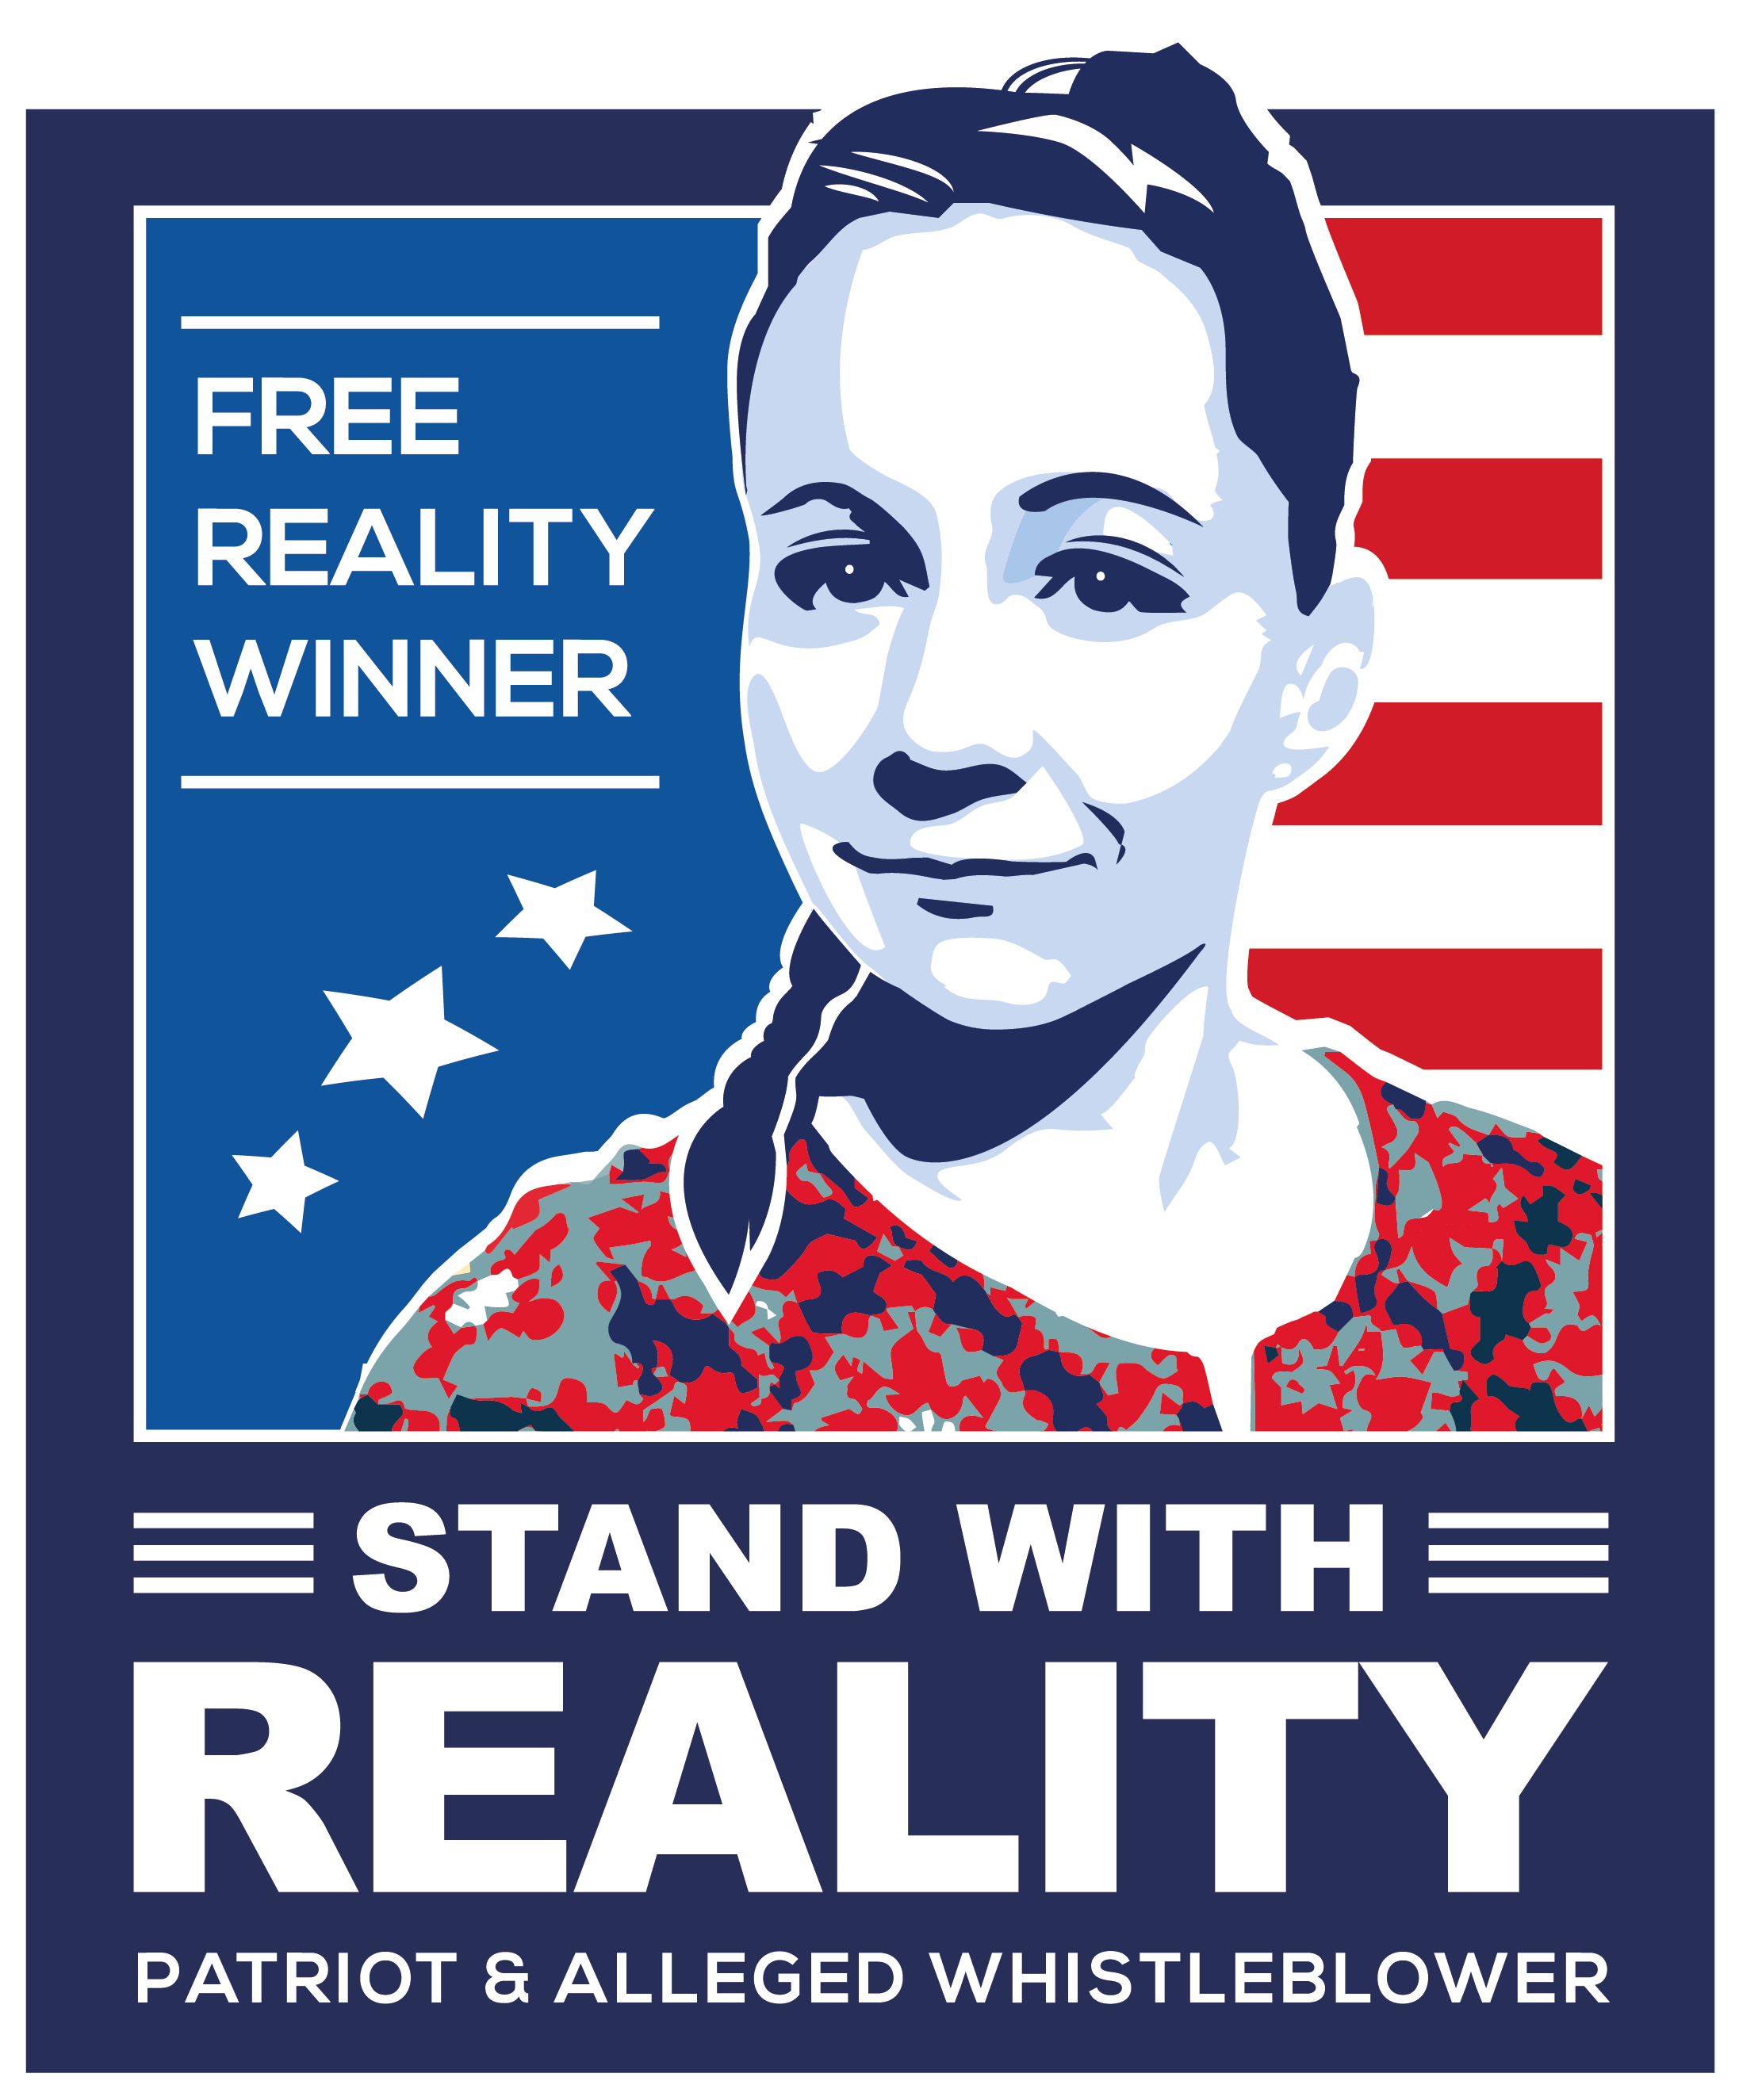 Ep. 72: Billie Winner-Davis on Her Daughter Reality Winner, the 1st Target of Trump's War on Whistleblowers